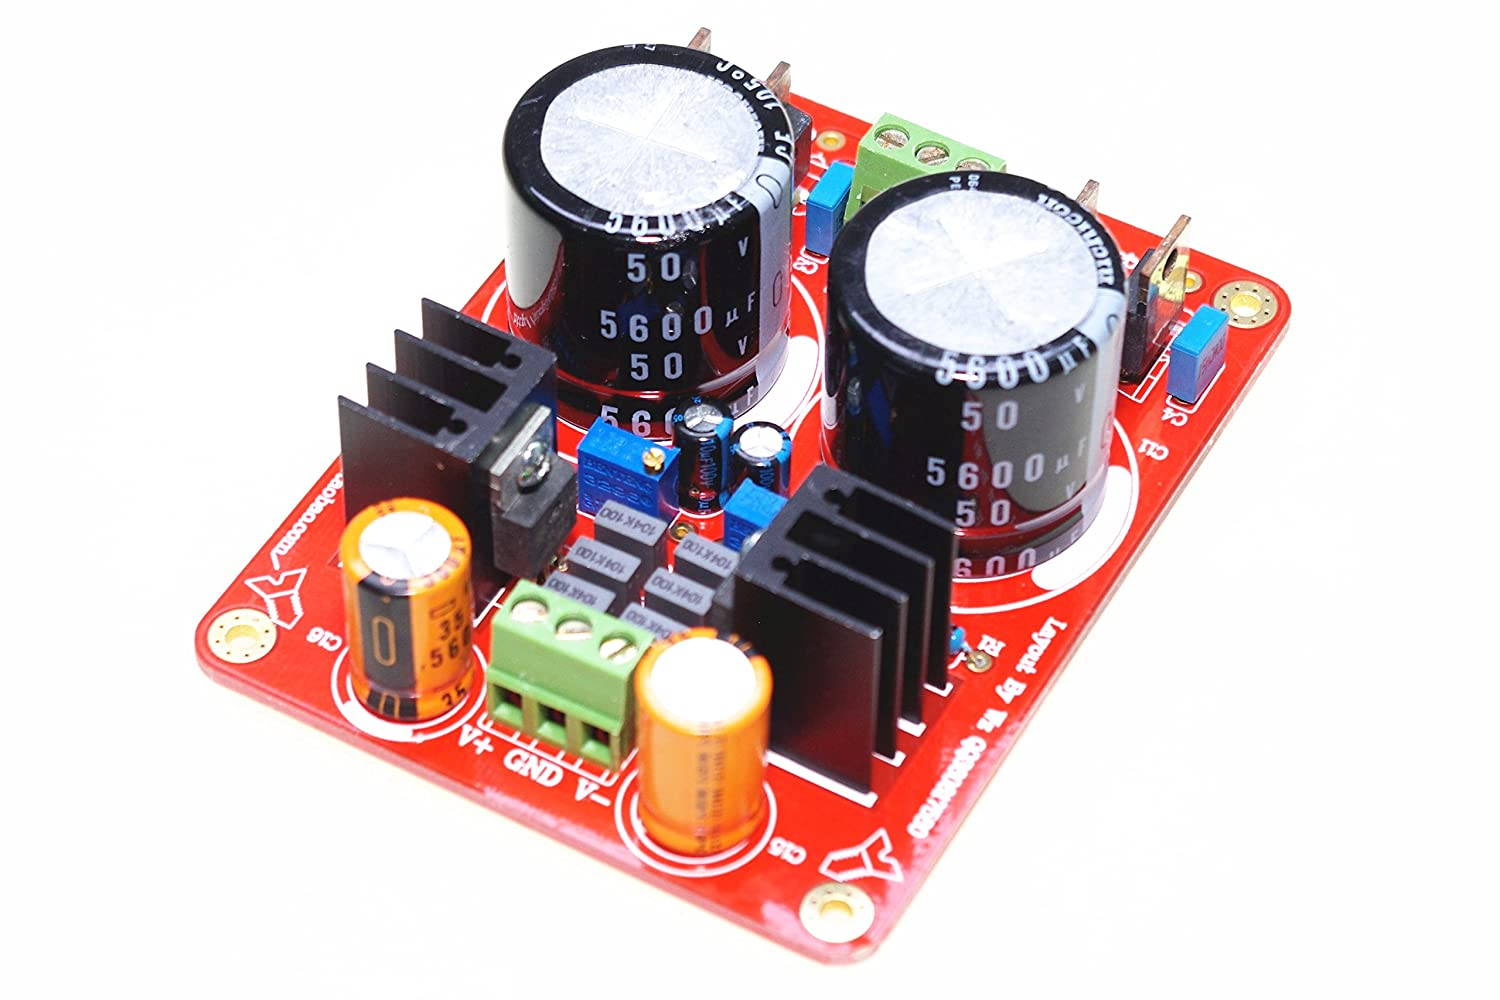 Smakn Lm317 Lm337 Adjustable Regulated Power Supply Using Lm 317 Electronic Circuits And Diagram Board W Short Capacitance Automotive